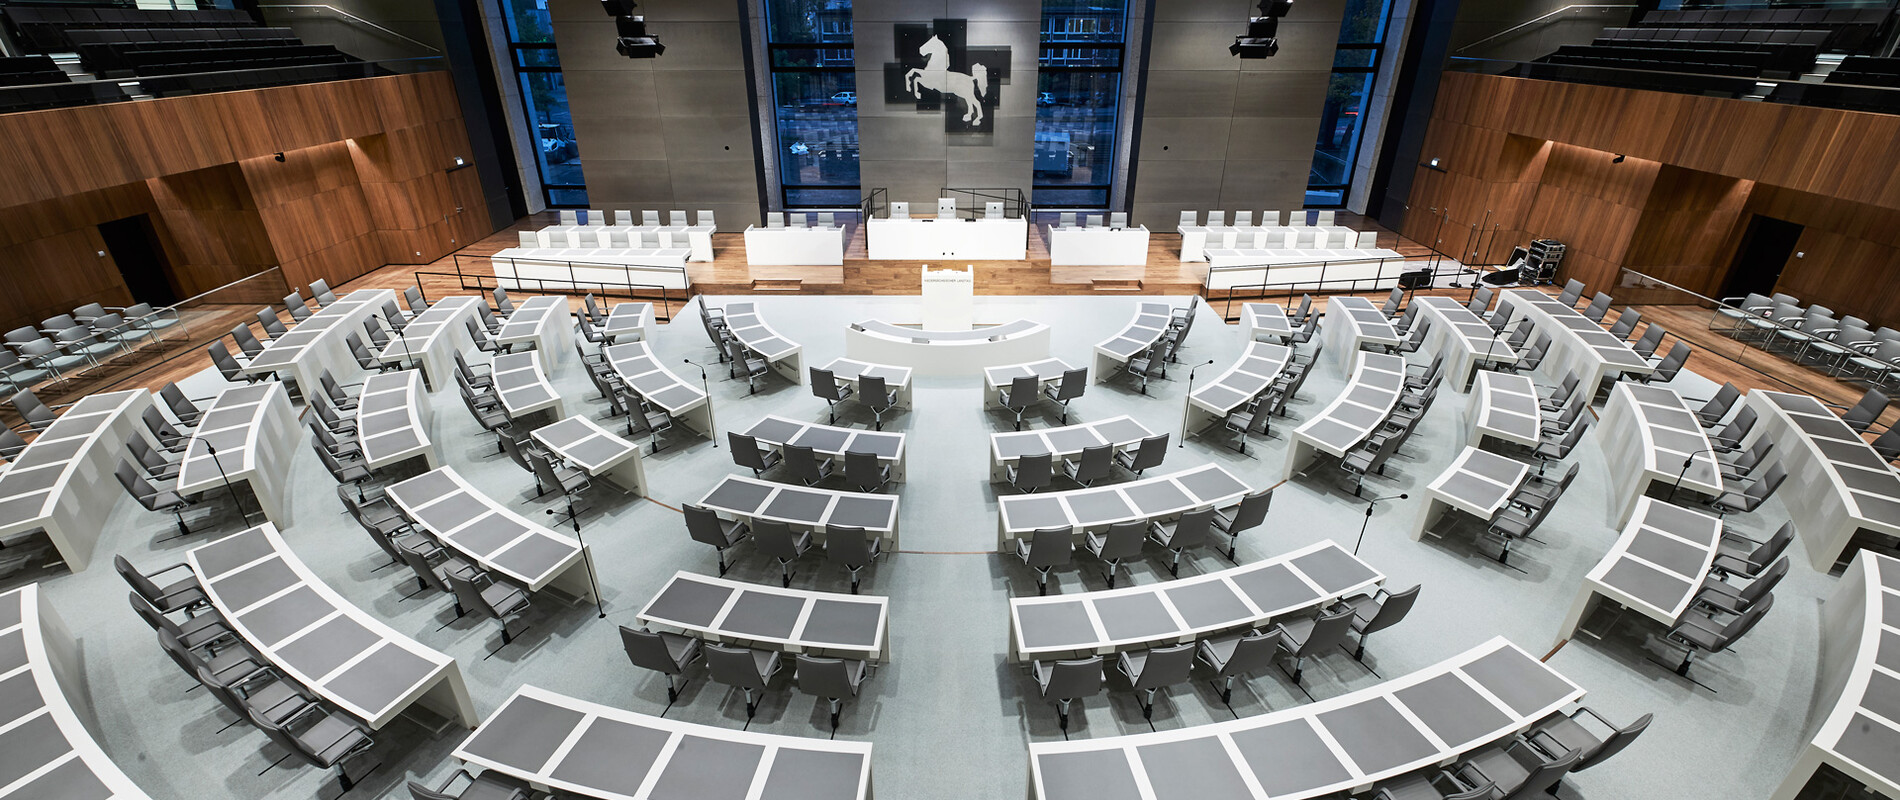 Branding - Lower Saxony's State Parliament in Hannover - auditorium overview